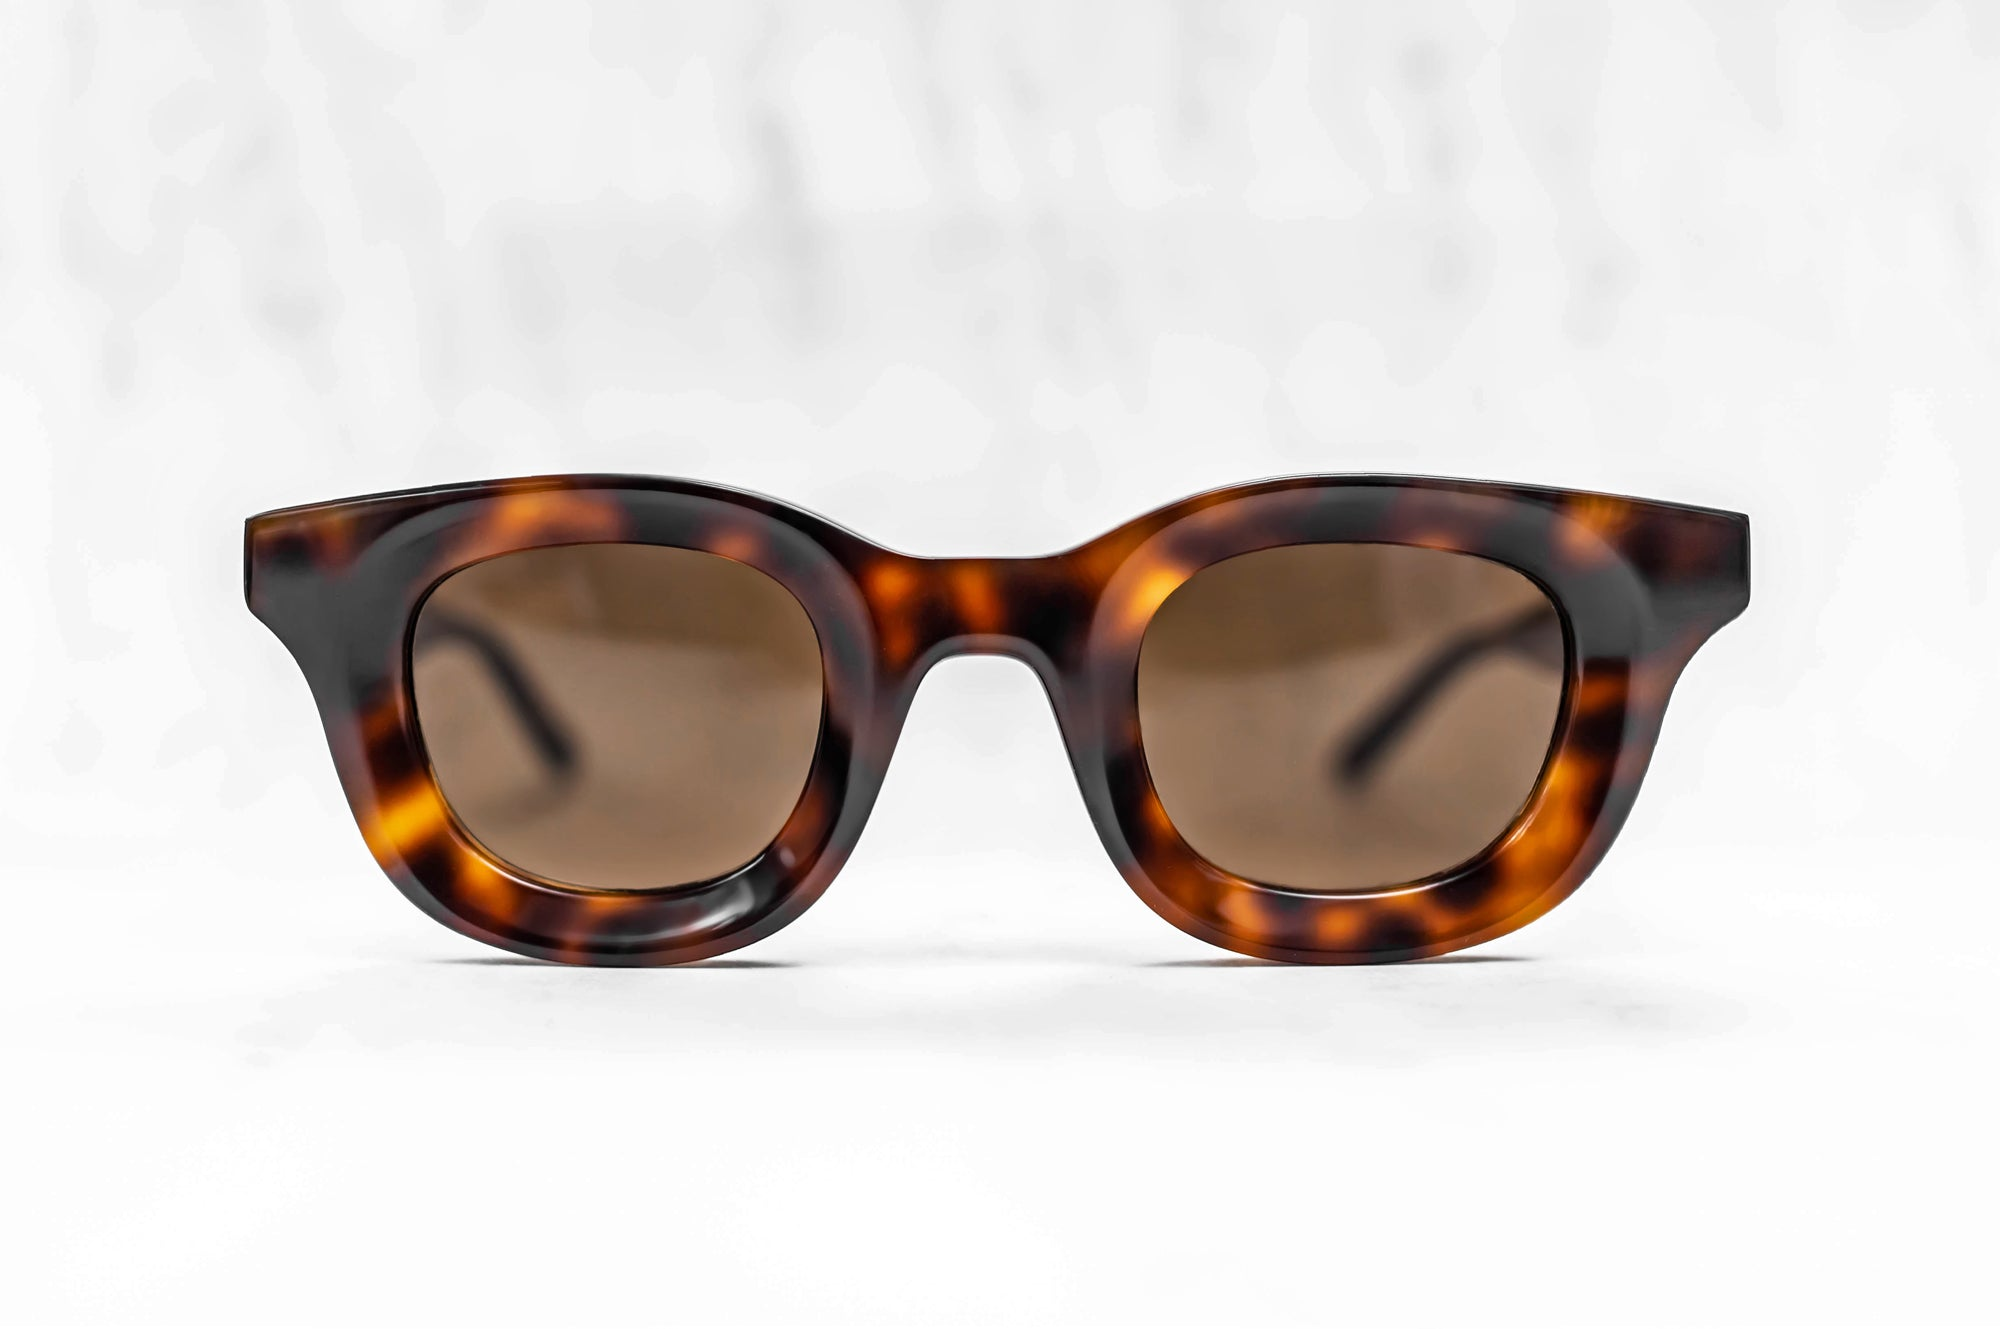 RHUDE x Thierry Lasry - Rhodeo Sunglasses in Tortoise Shell w/ Brown Lenses (610)